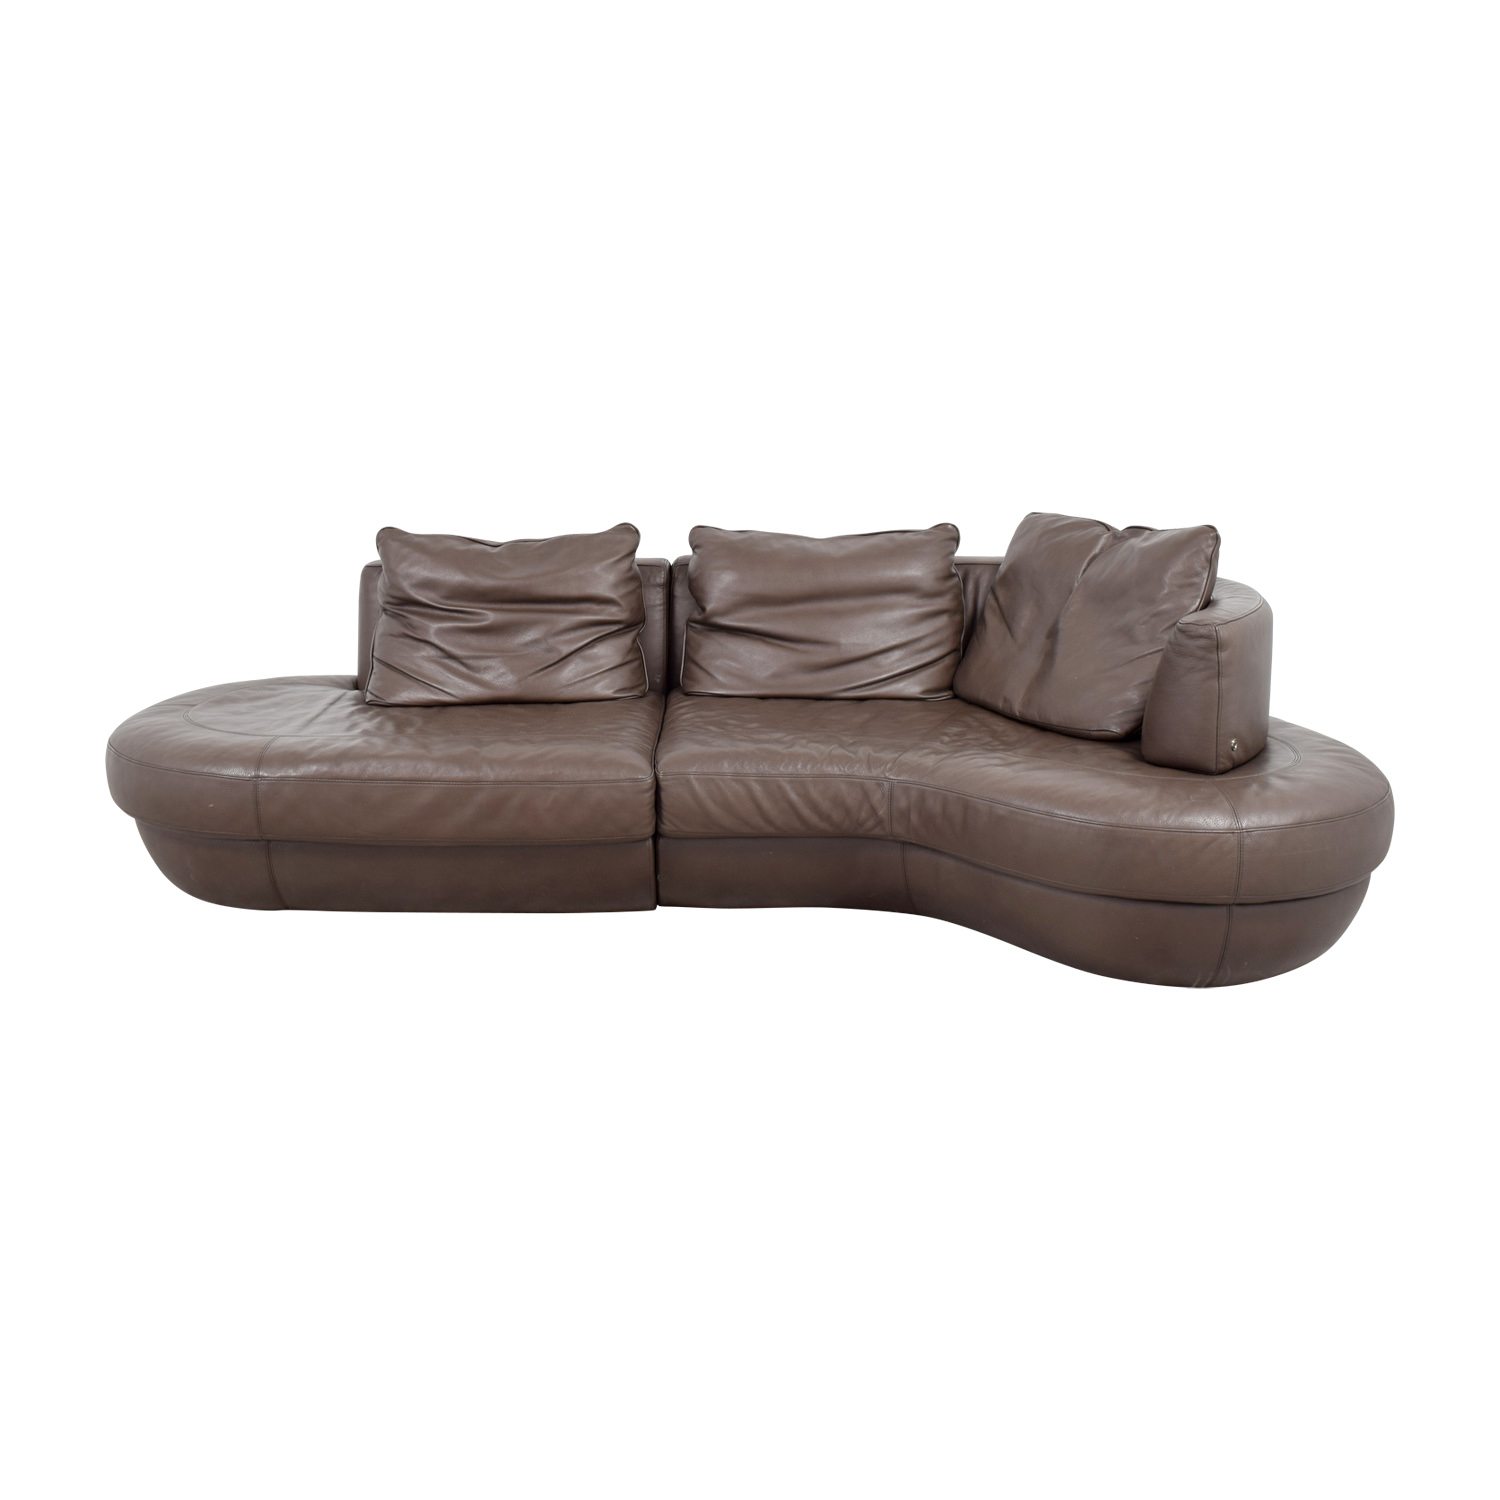 90 Off Natuzzi Natuzzi Rondo Brown Leather Curved Sectional Sofas